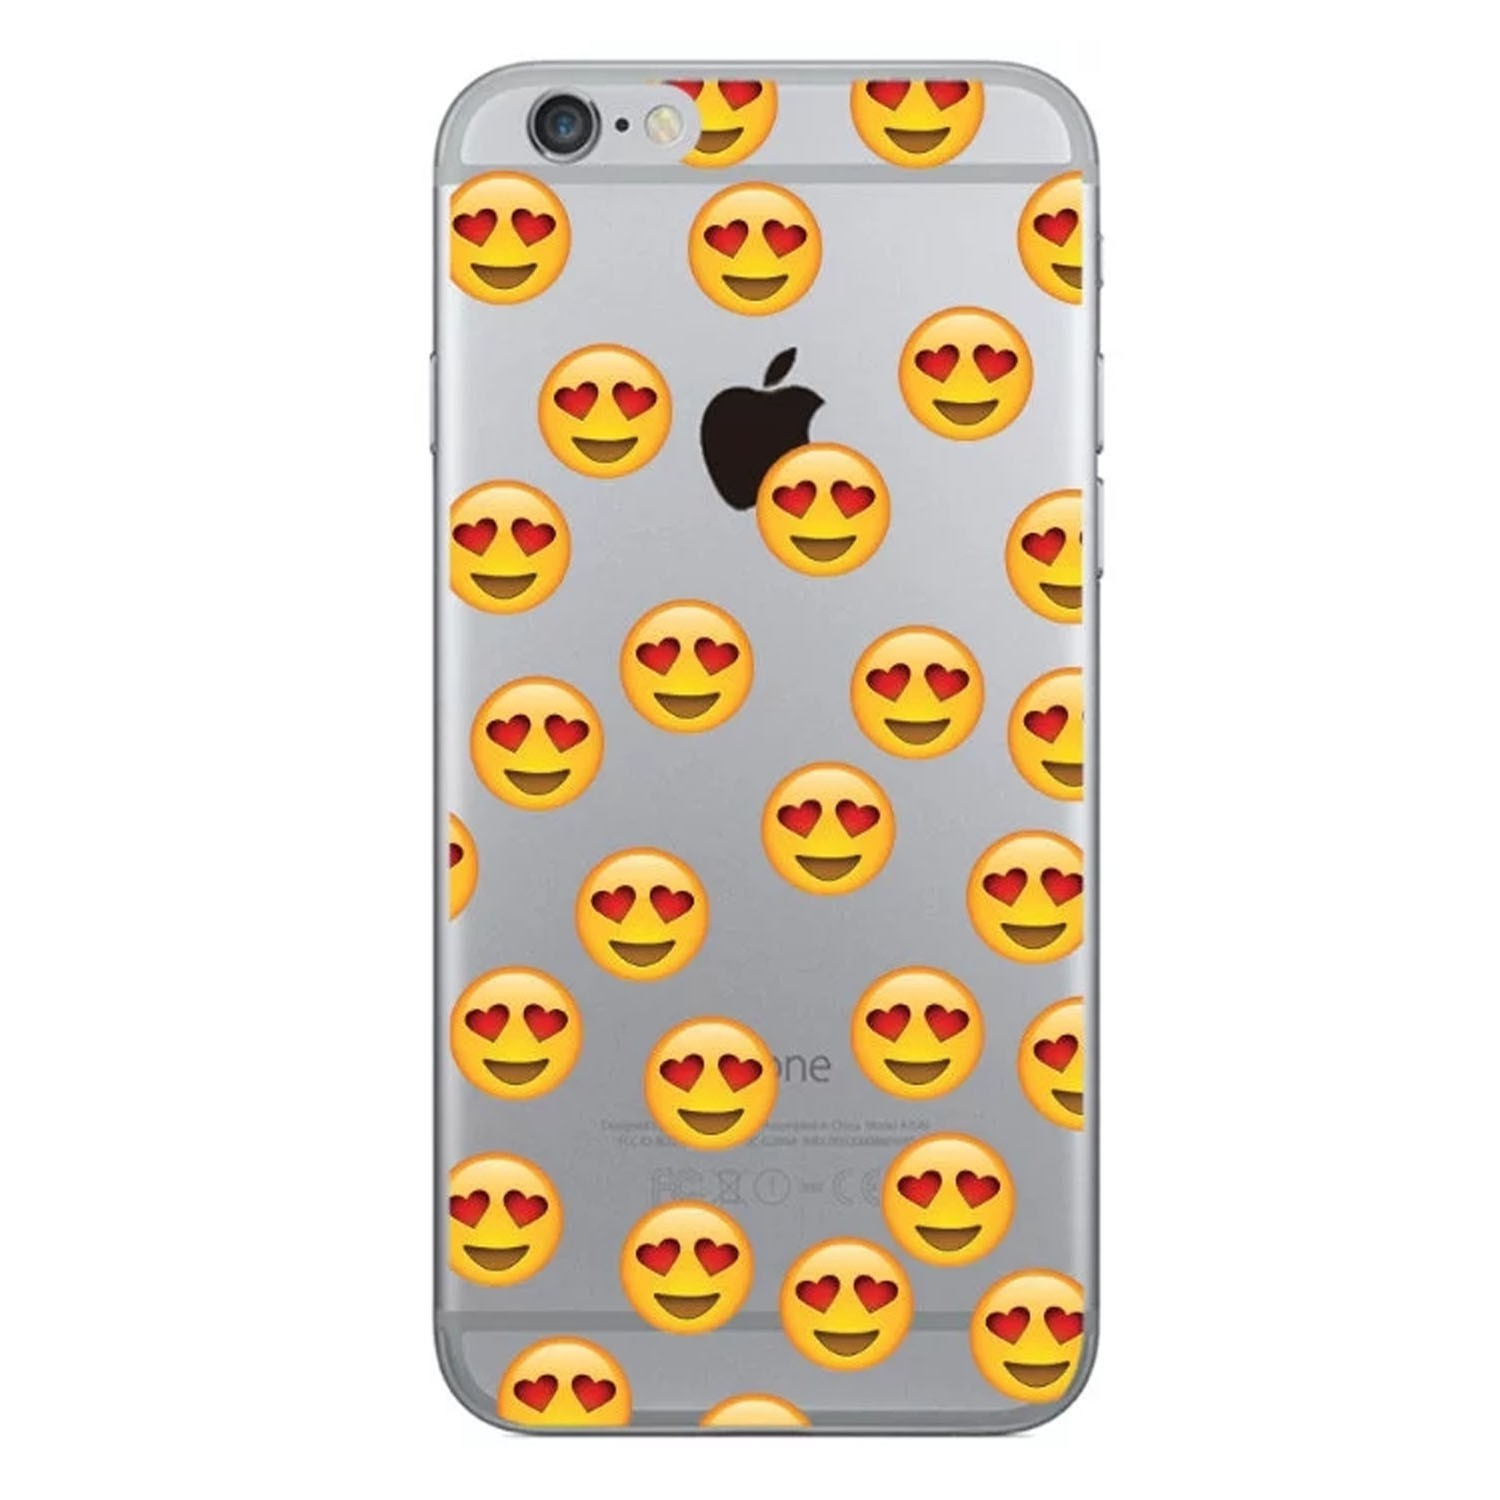 Kritzel Case Emoji Collection iPhone 6 / 6s - #66